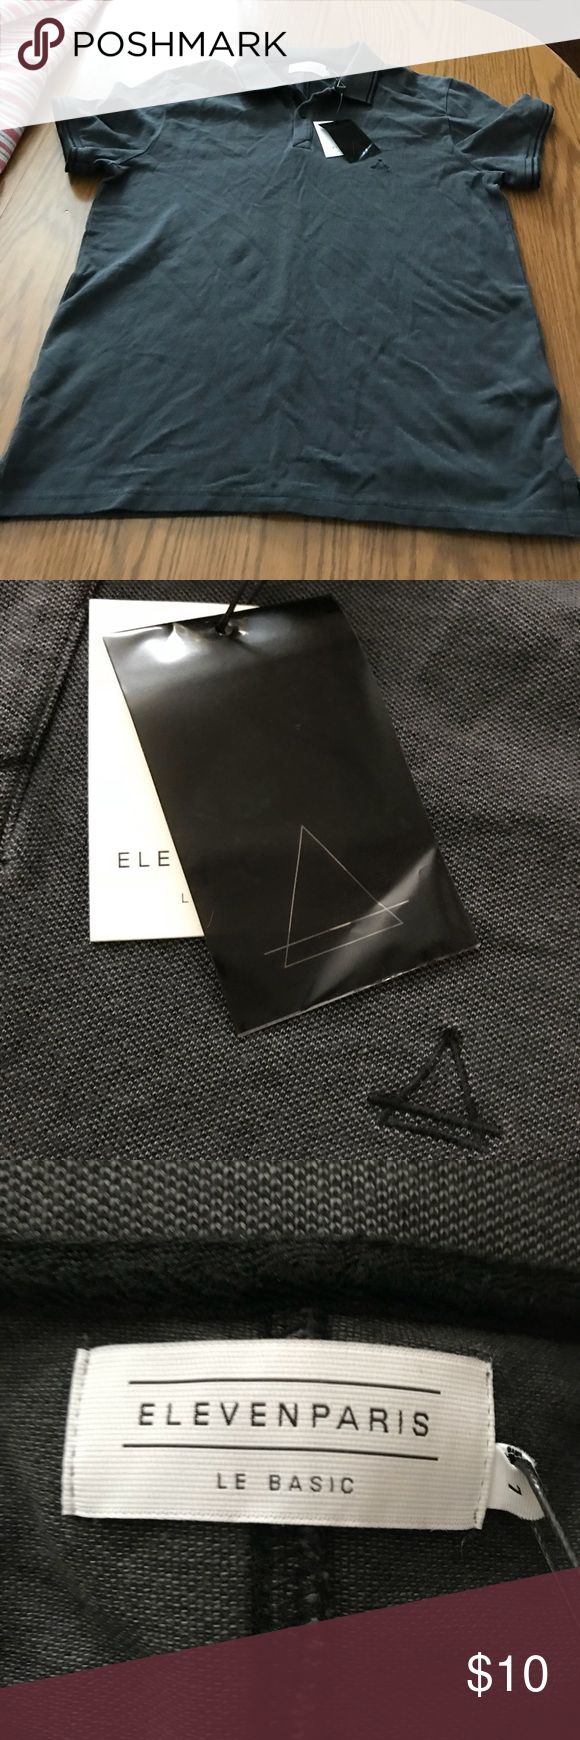 Ladies Polo Shirt new with tags Black/charcoal polo shirt. Soft material. Tops